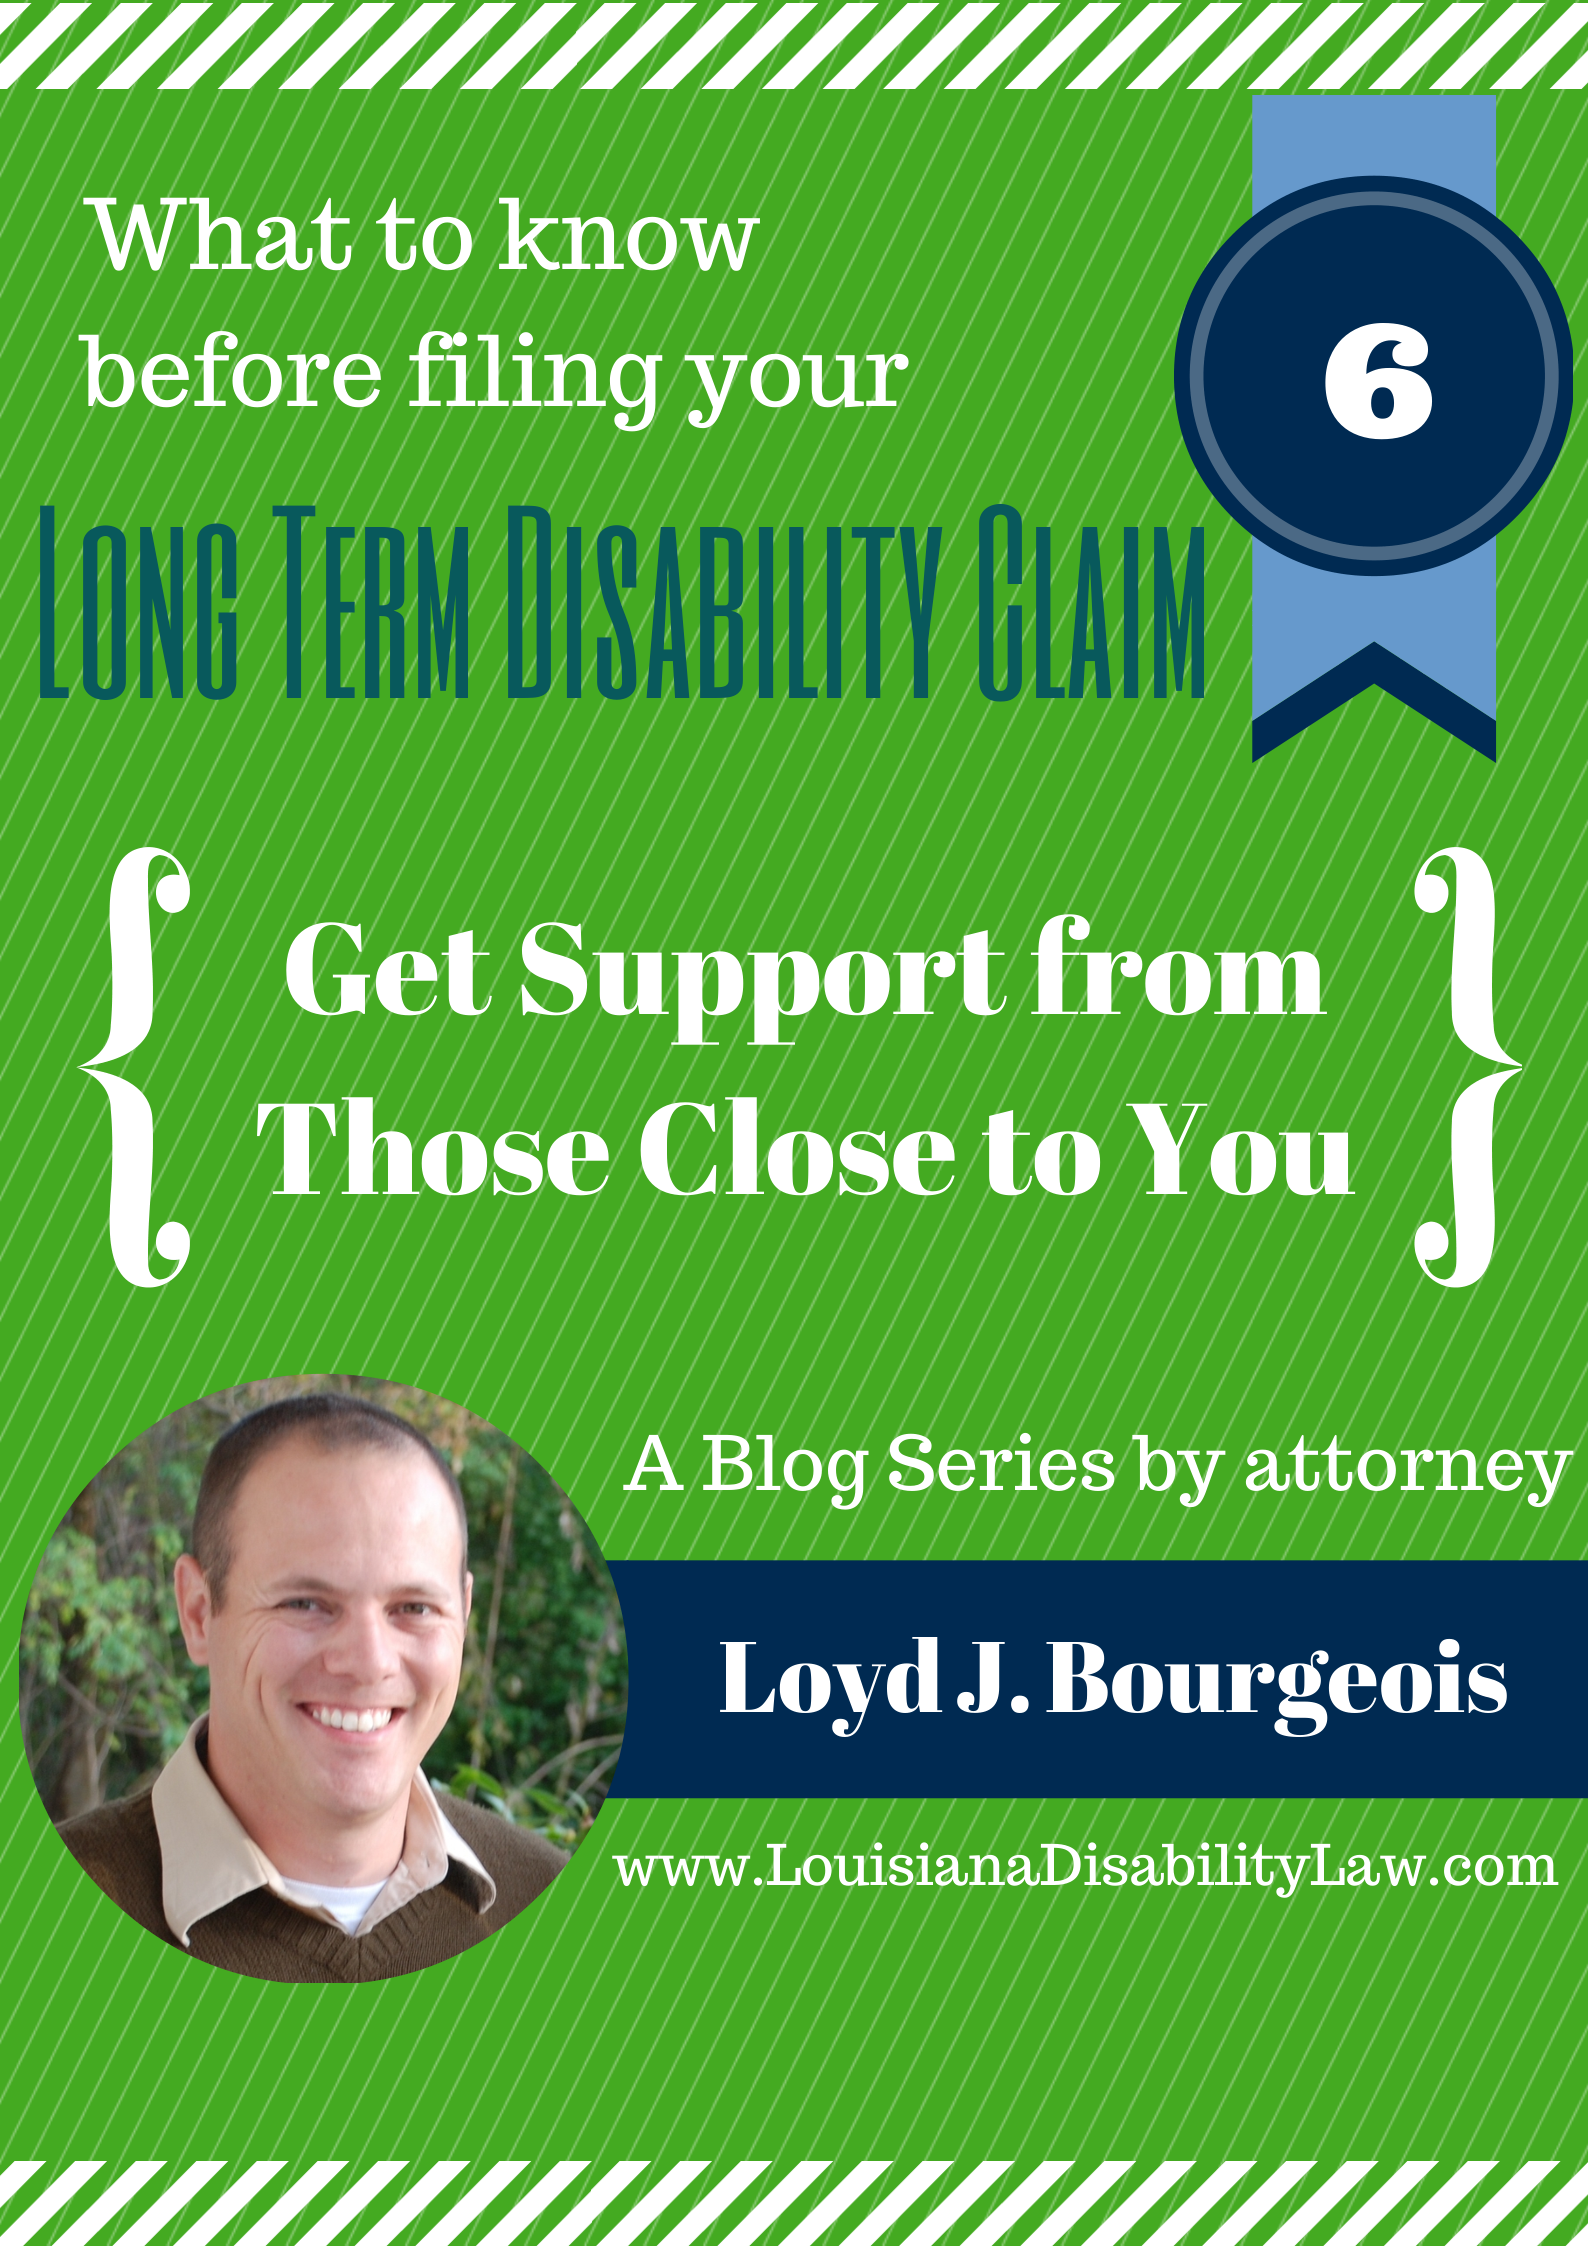 What to know before filing a Long-Term Disability claim: Get Support